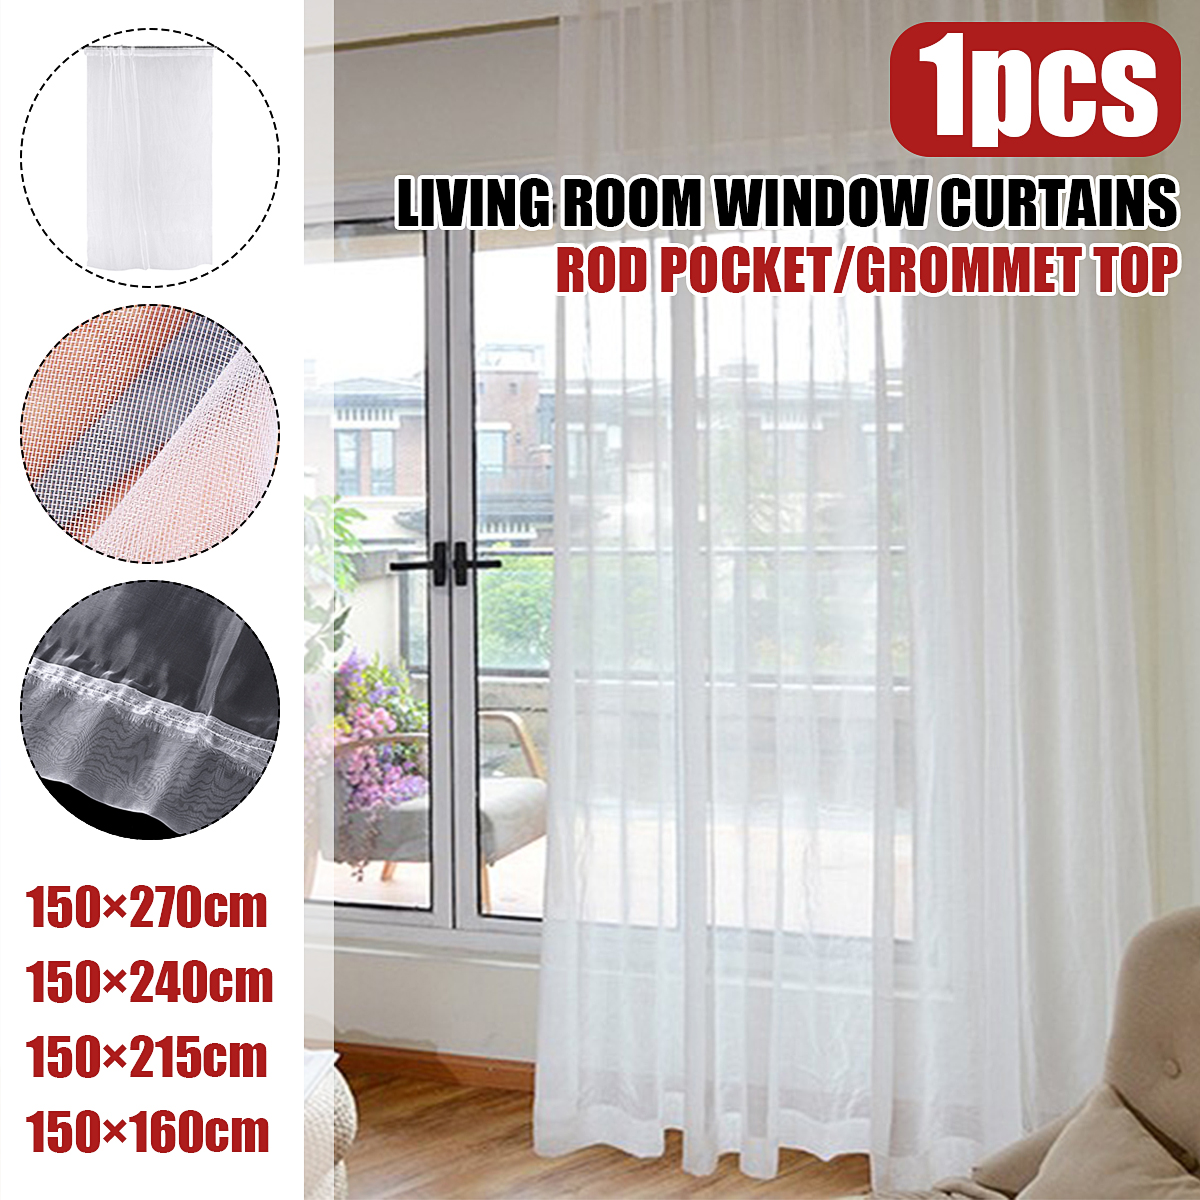 white sheer curtains 95 inches long for living room rod pocket drapes for bedroom voile window curtain 1 panel white